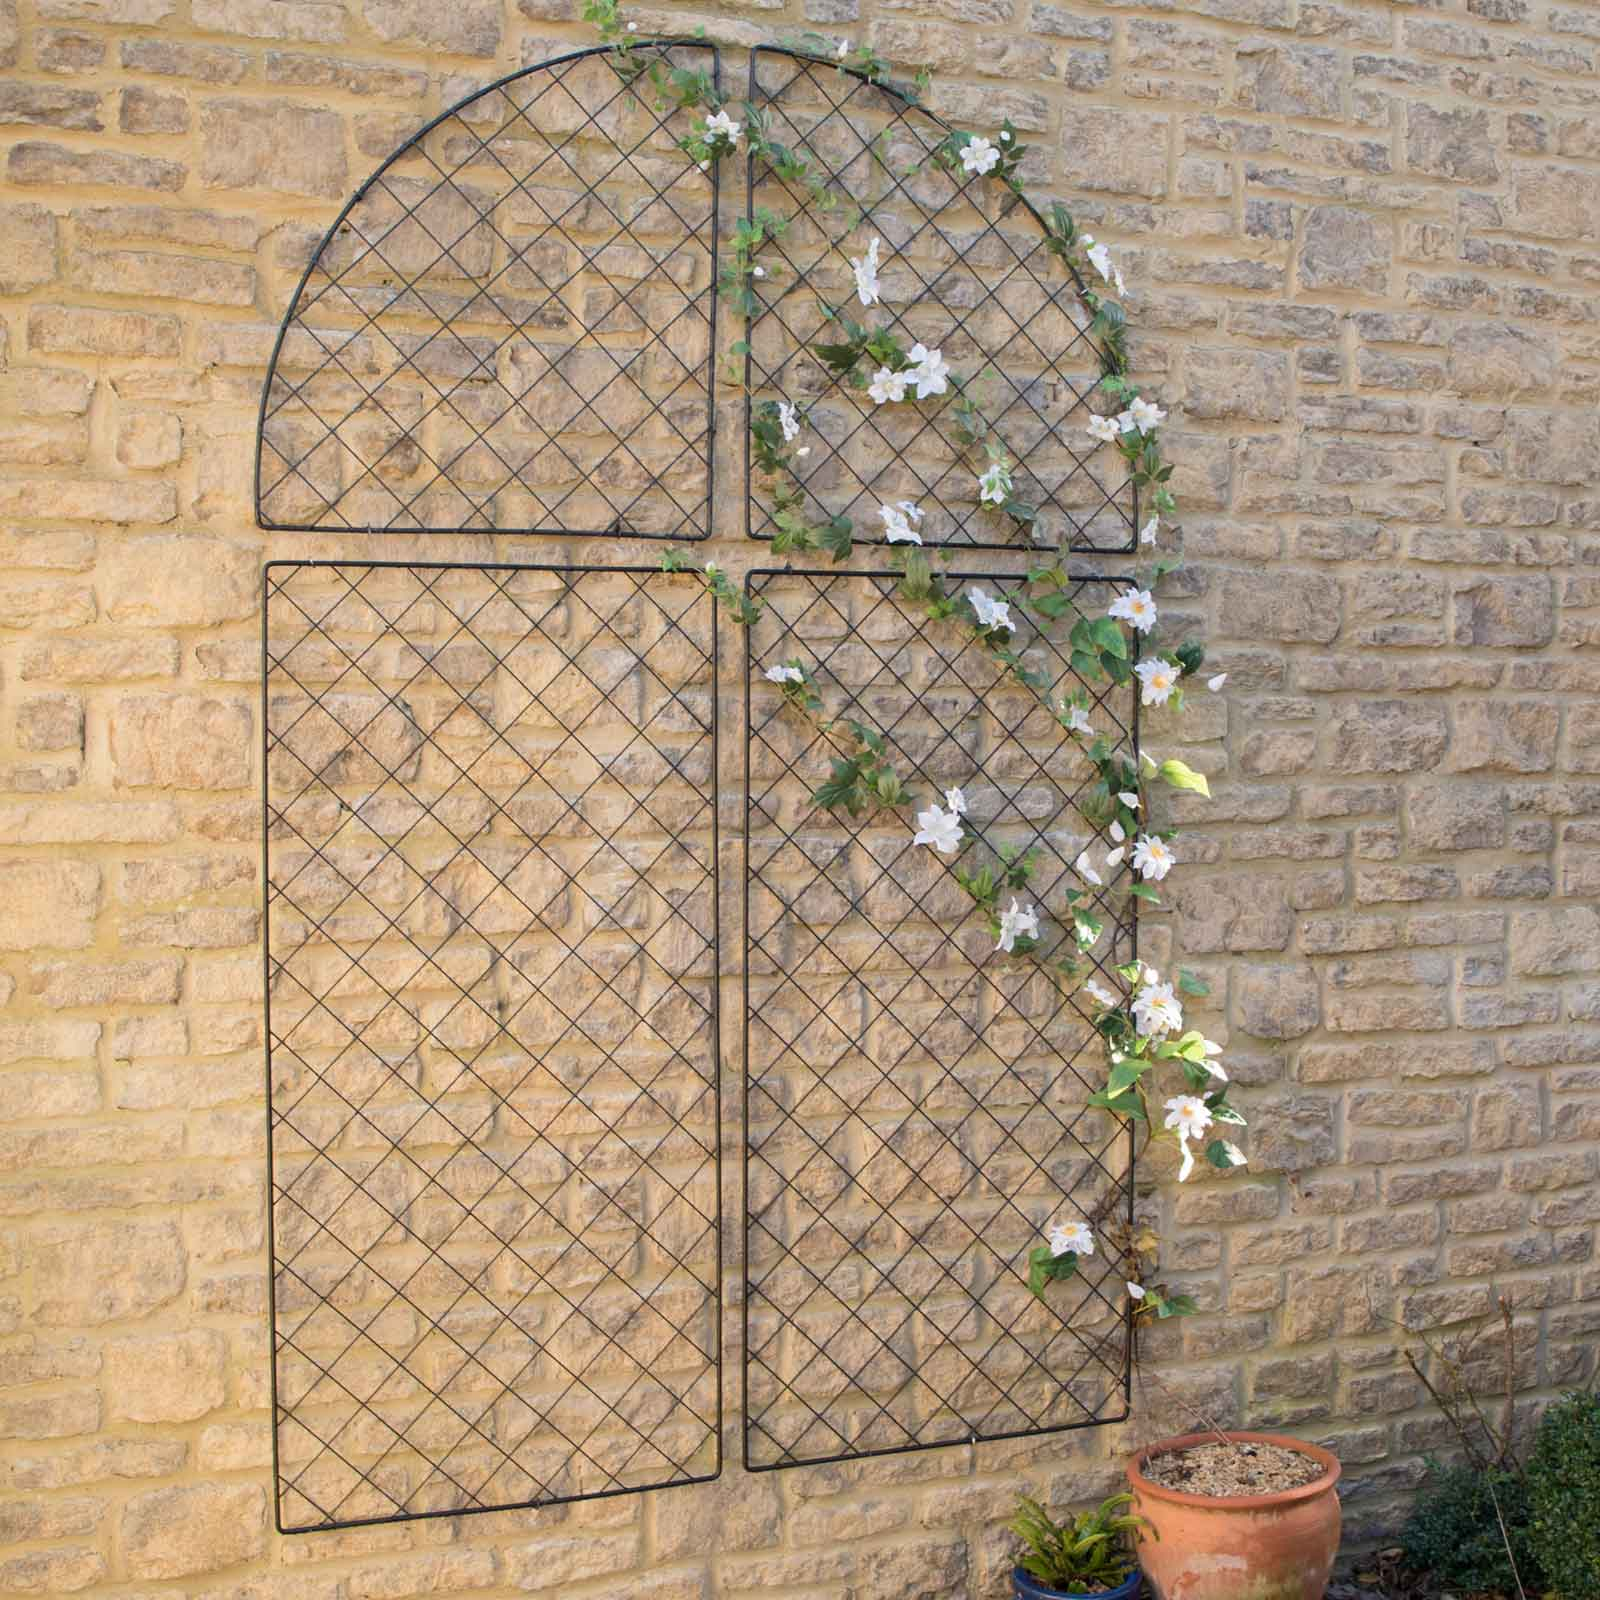 The Harrod Wall Trellis Frames Offer Stylish And Long Lasting Support For Your Climbing Plants, With A Traditional Roman Arch Shape The Panels Will Ma